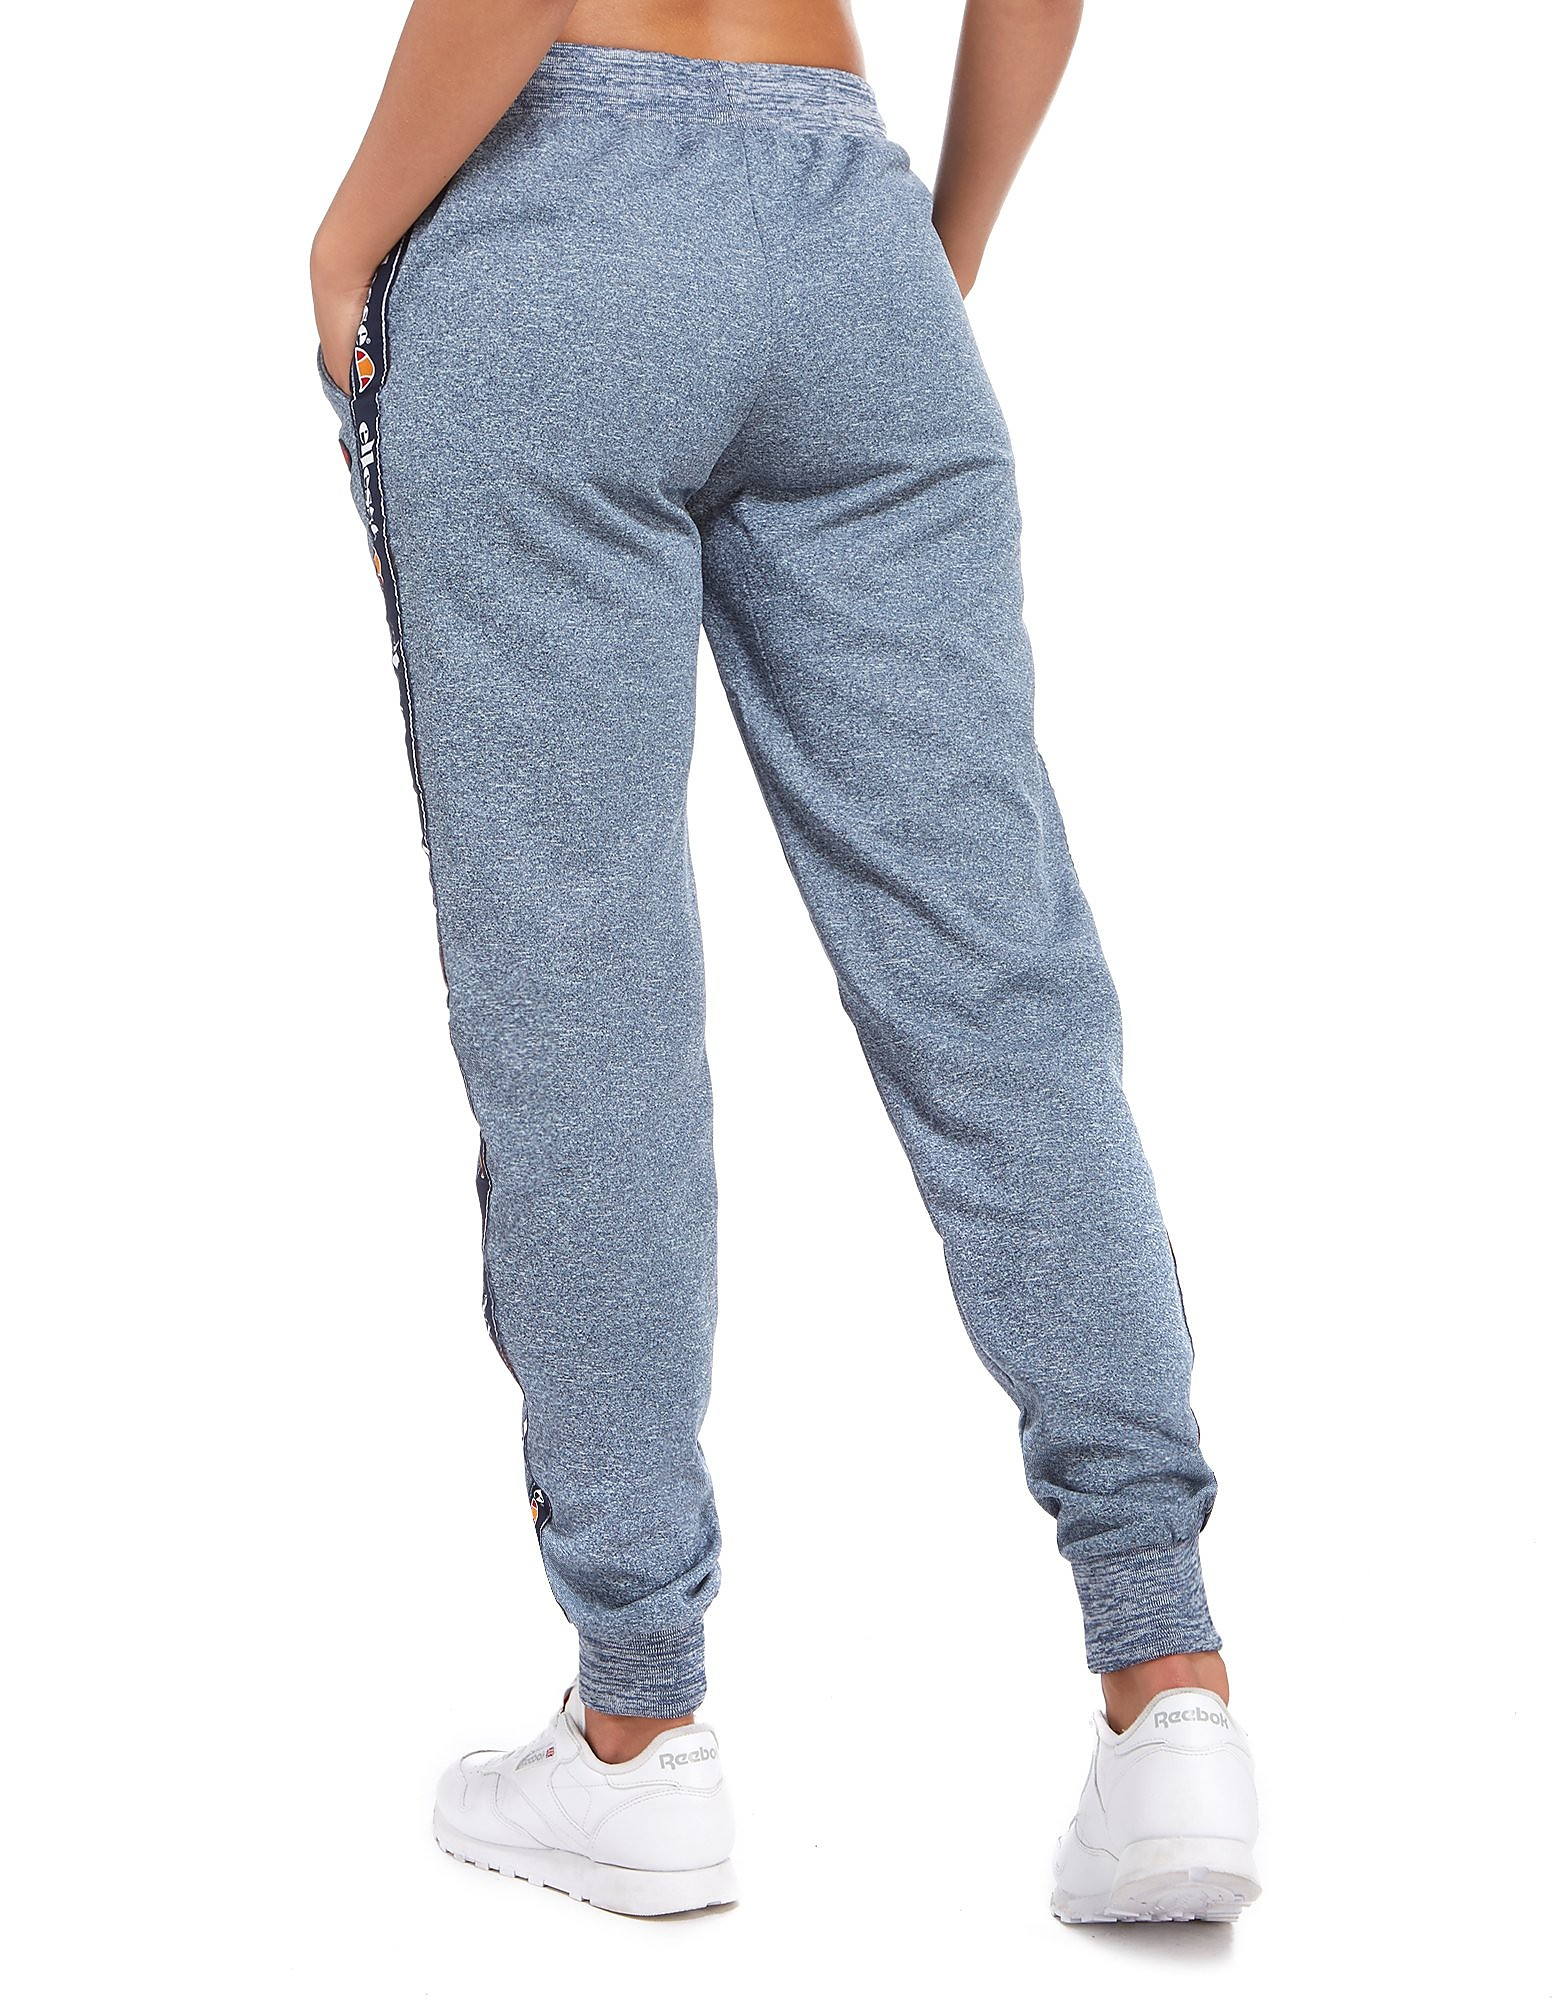 Ellesse Pantalon de survêtement Taped Femme